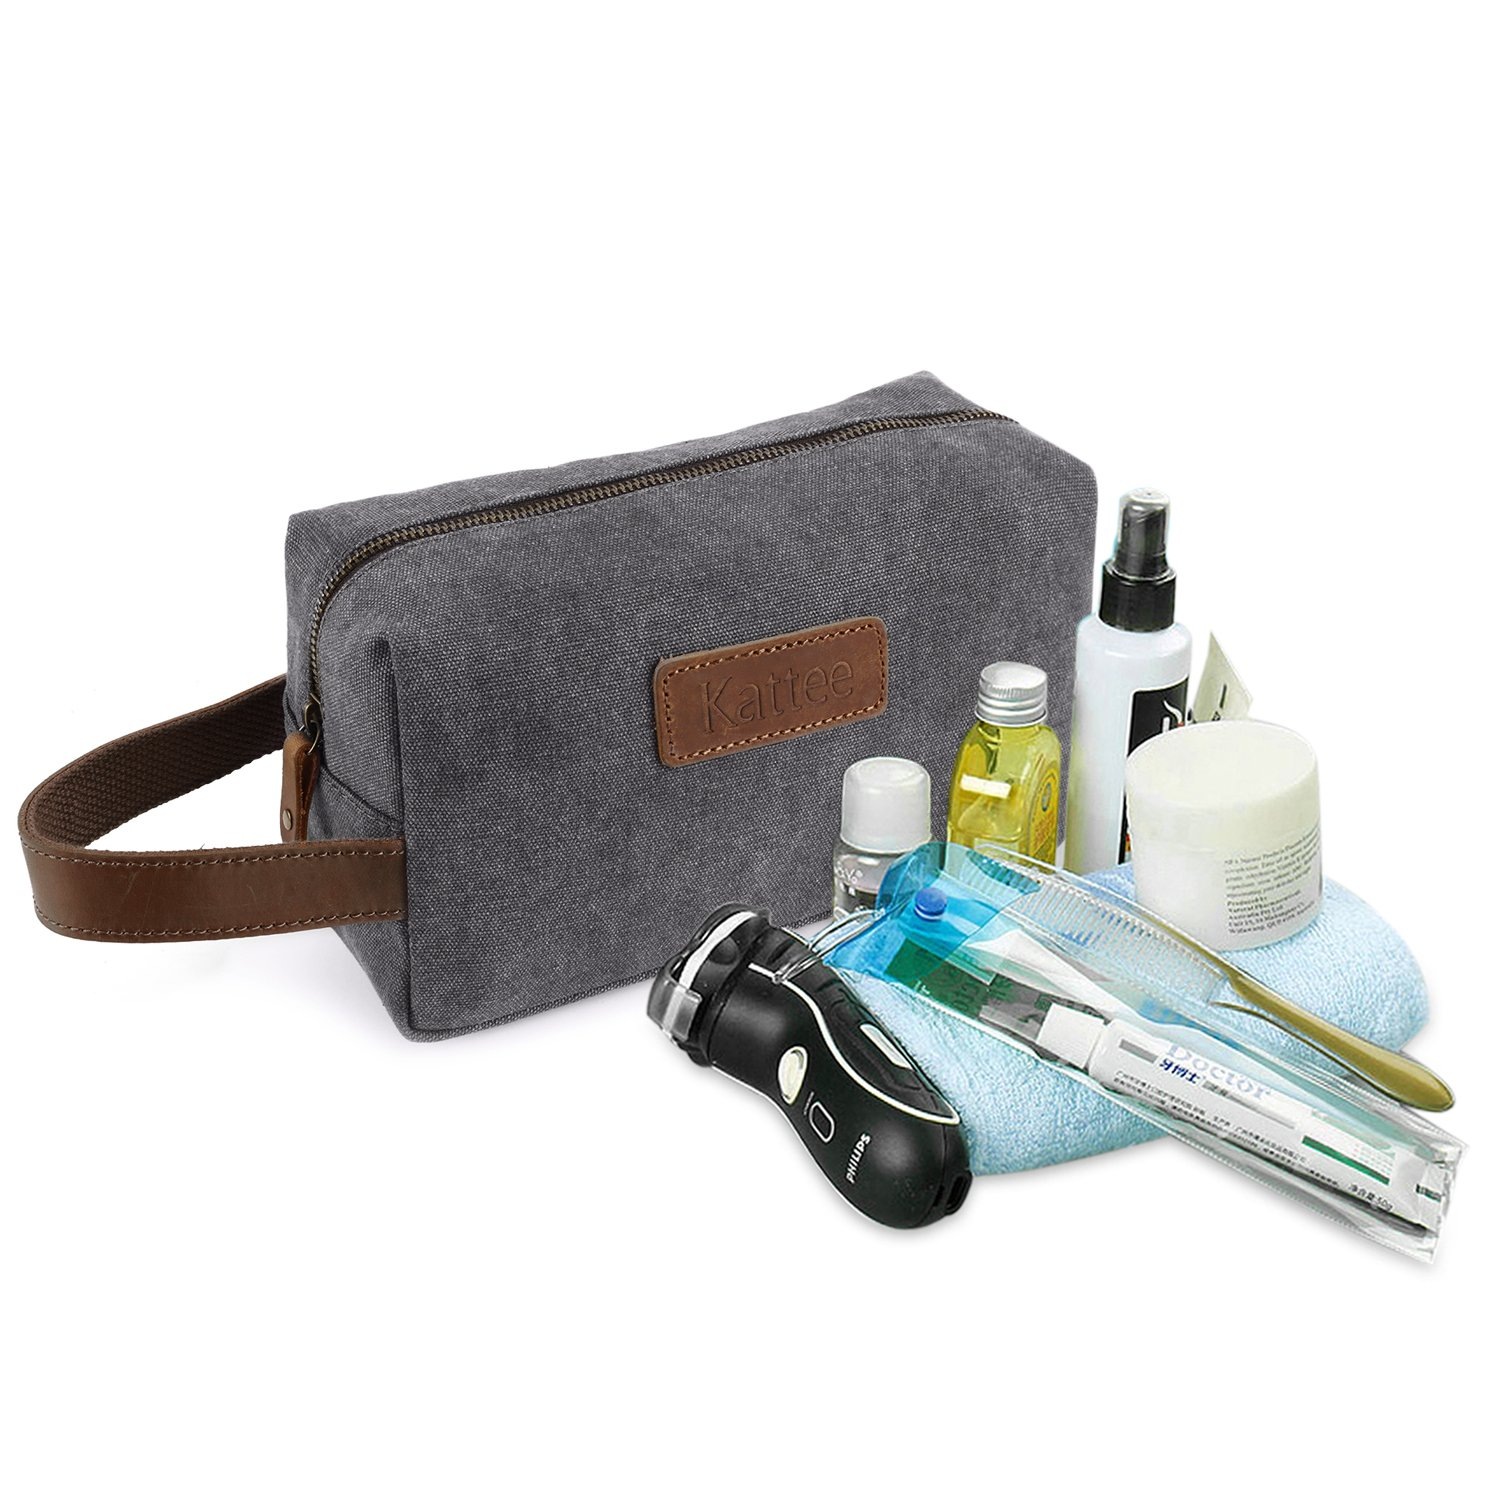 b6bd42877a05 Amazon.com   Kattee Mens Travel Toiletry Bag